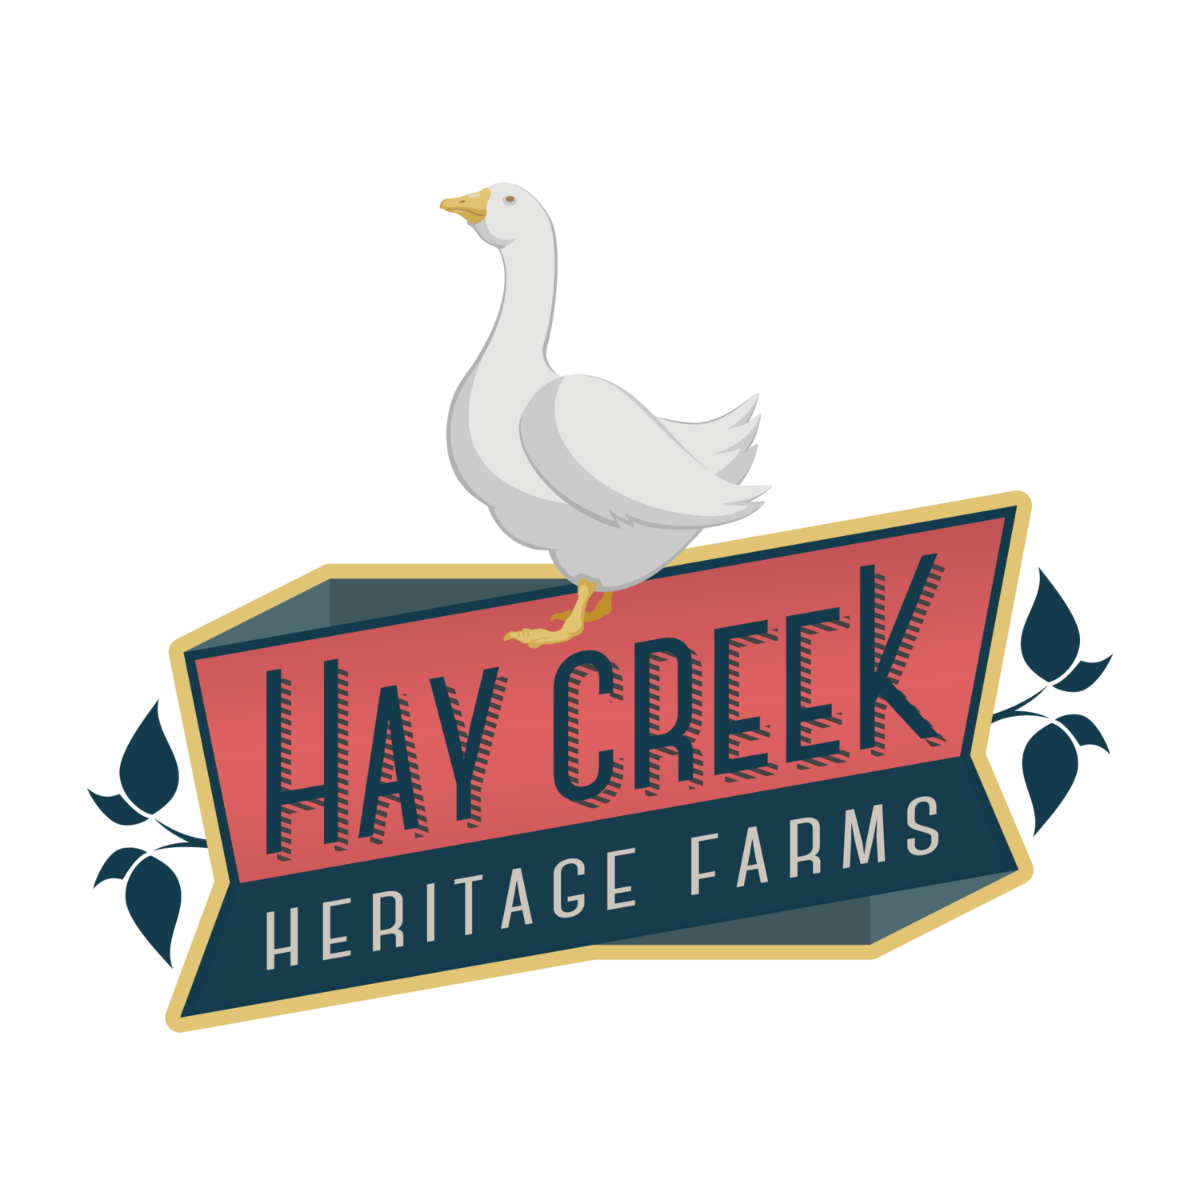 Hay Creek Heritage Farms